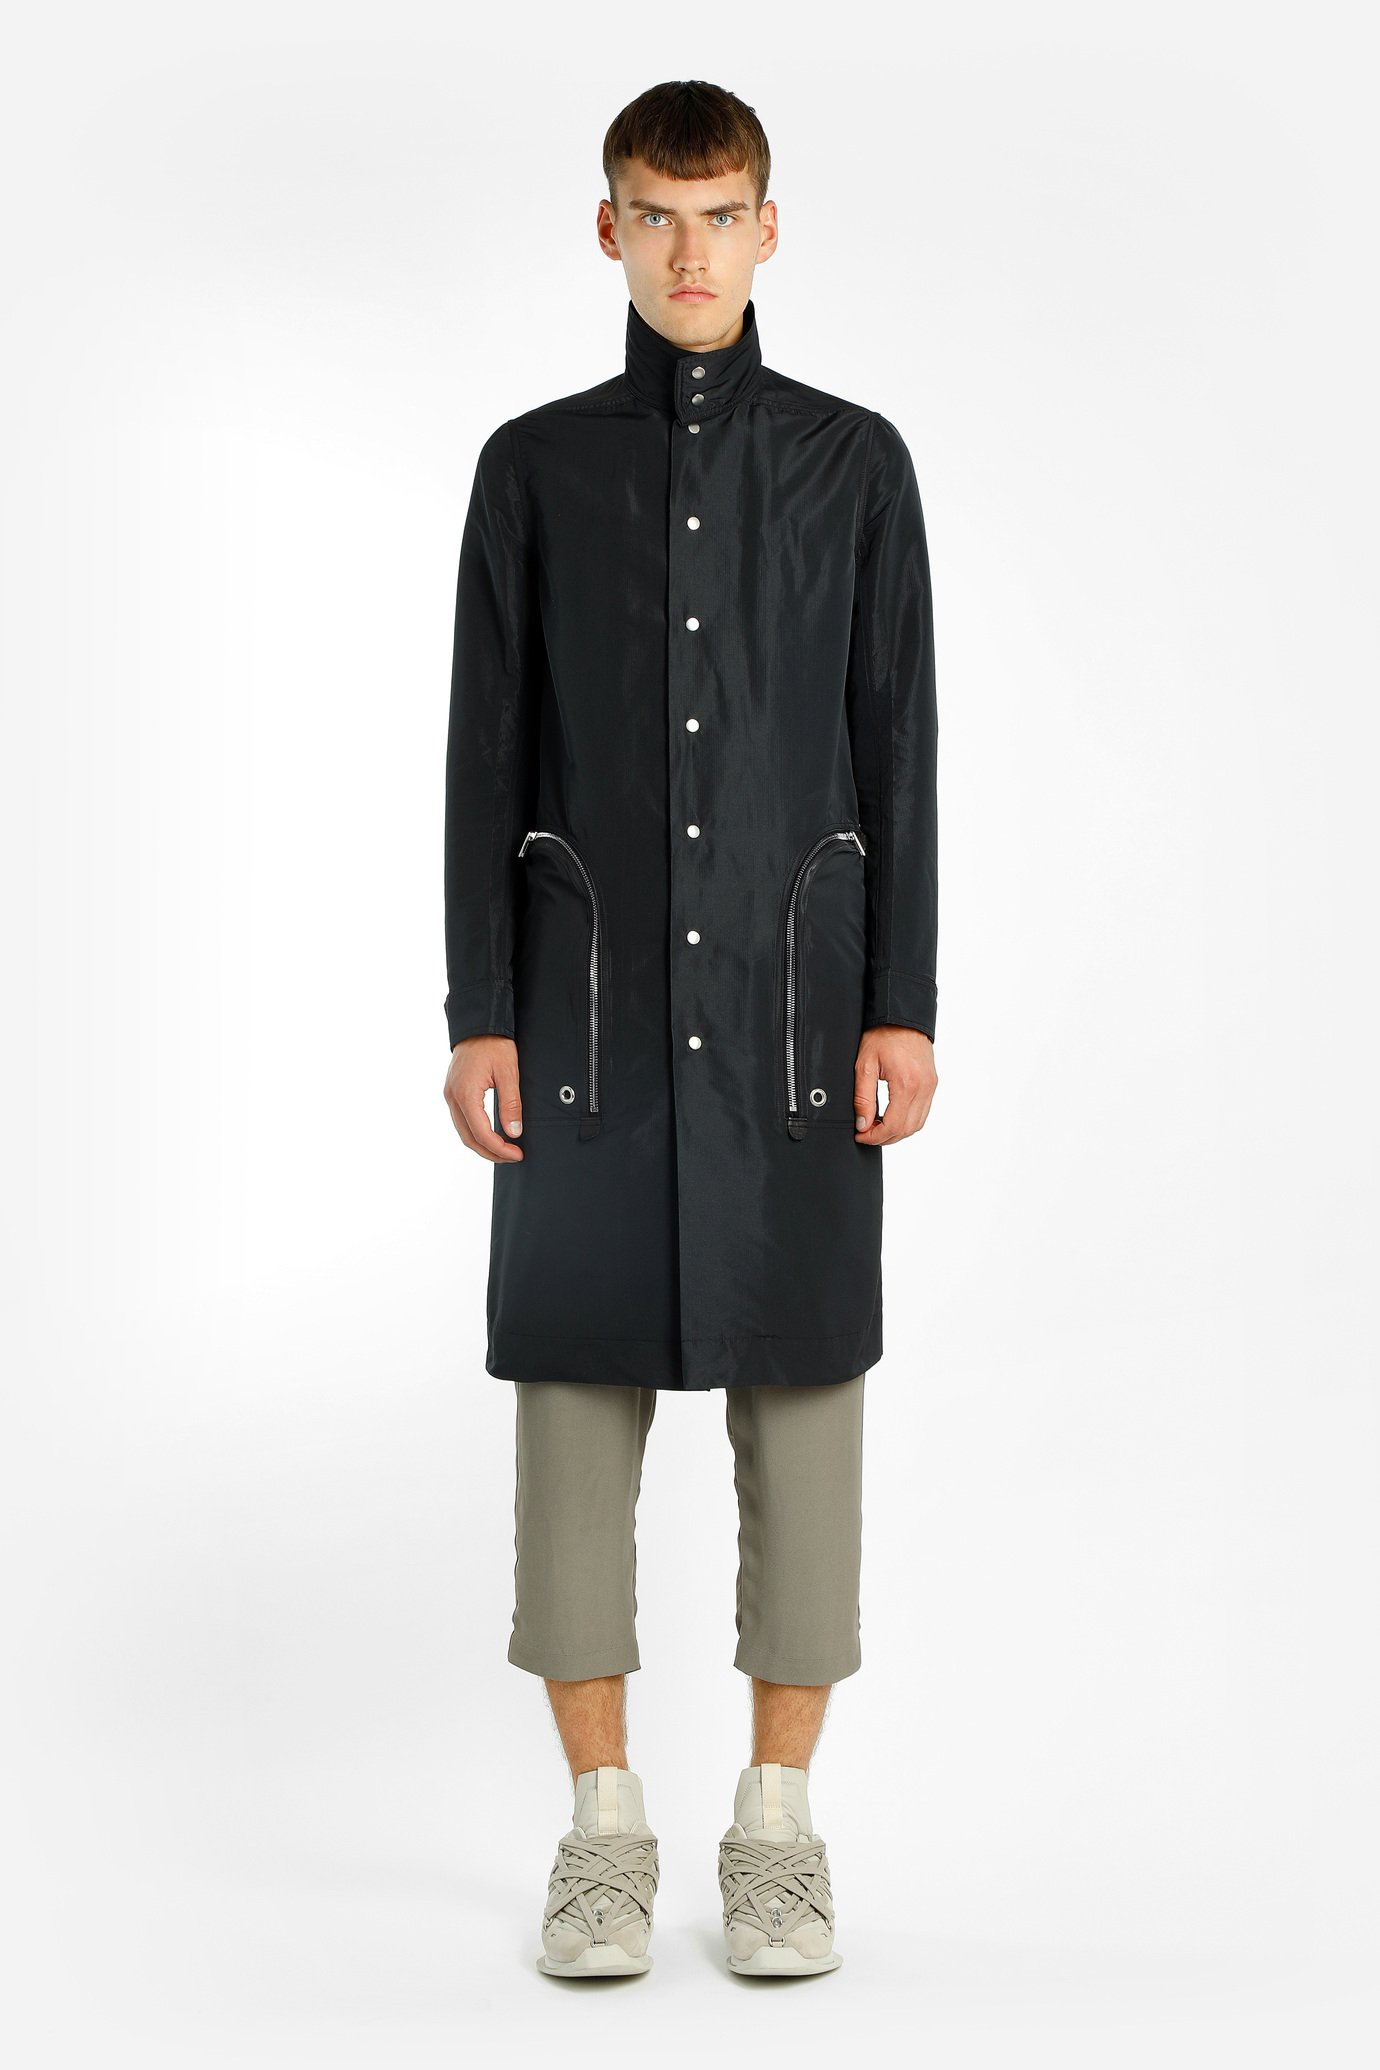 Image of Rick Owens Coats